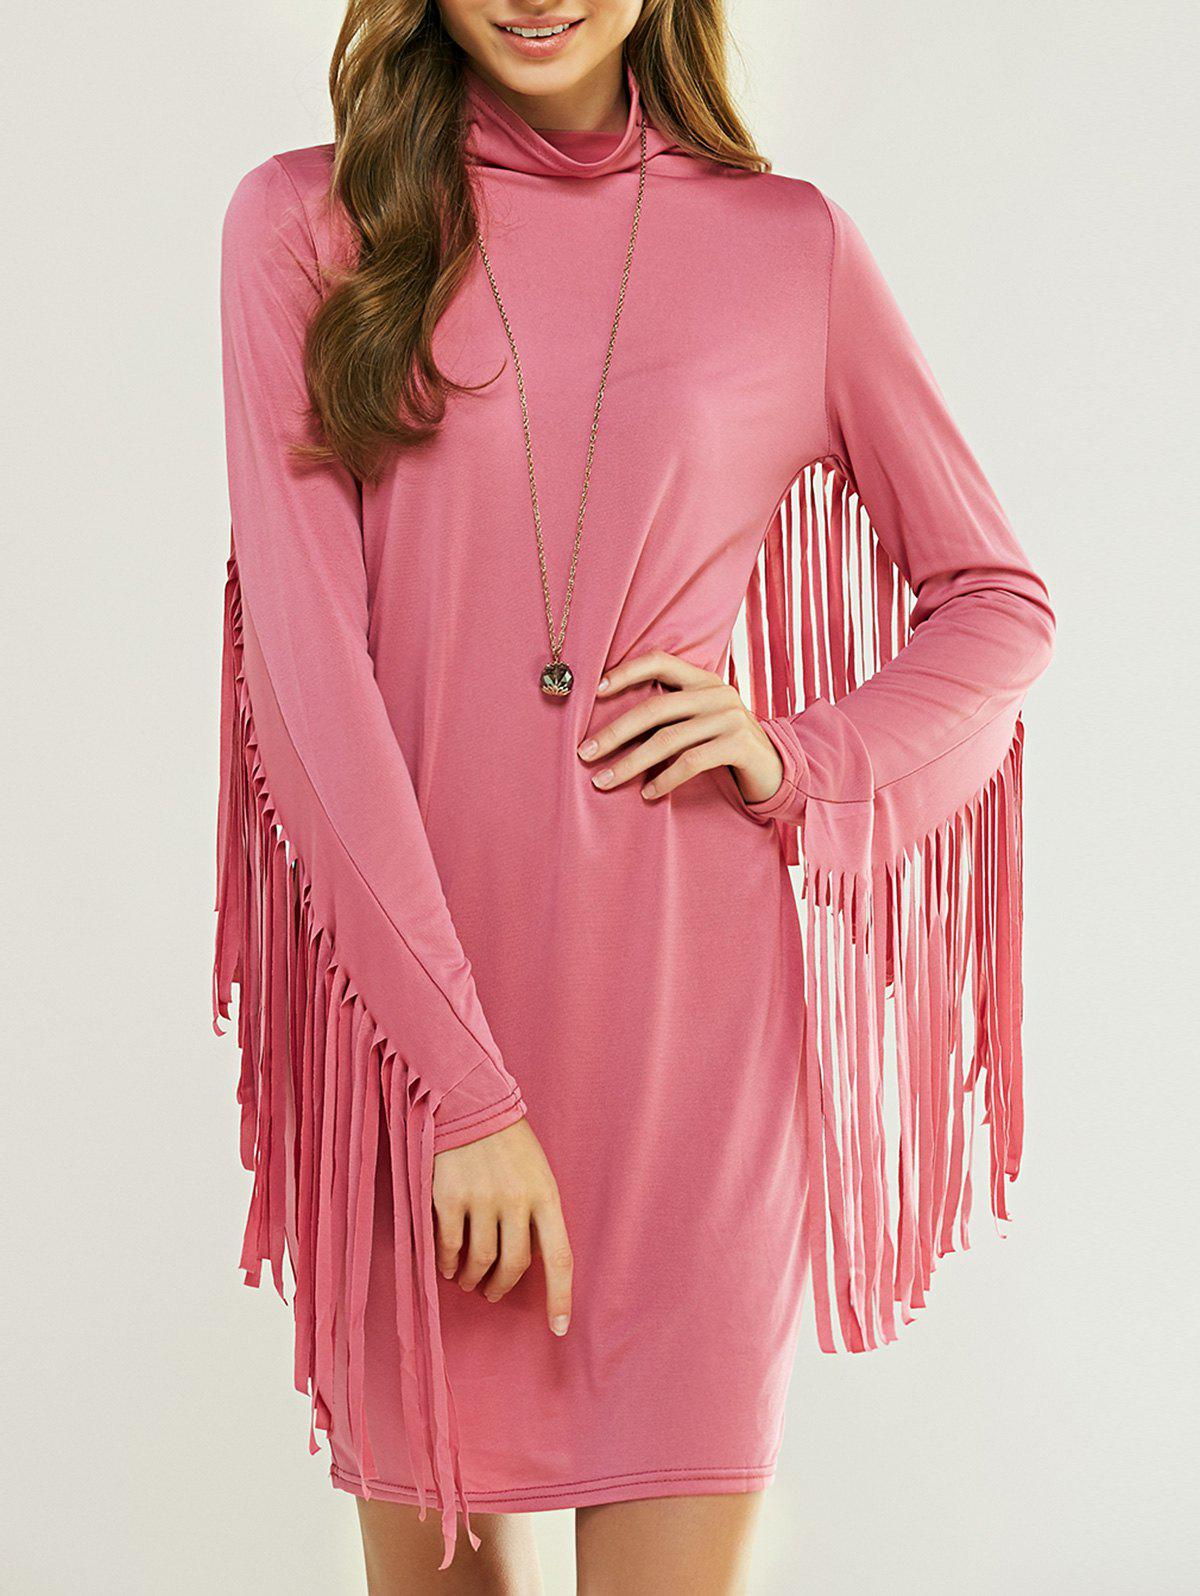 Cowl Neck Long Sleeve Fringed Skinny Dress - PINK XL